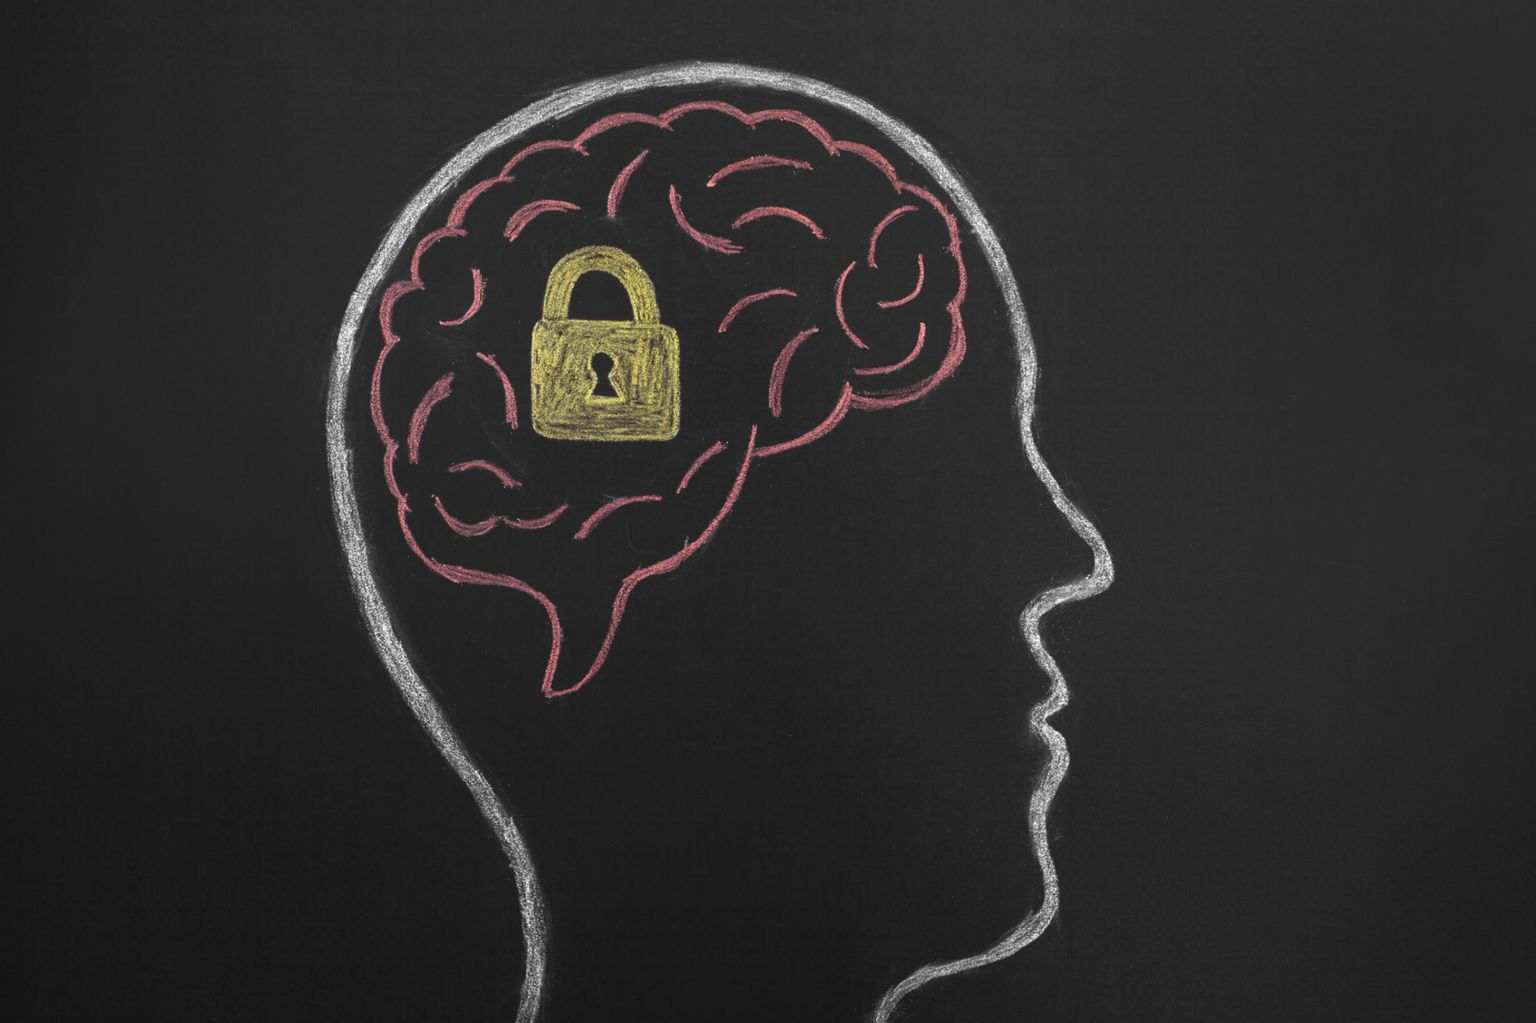 picture of head and brain inside, with padlock drawn on brain